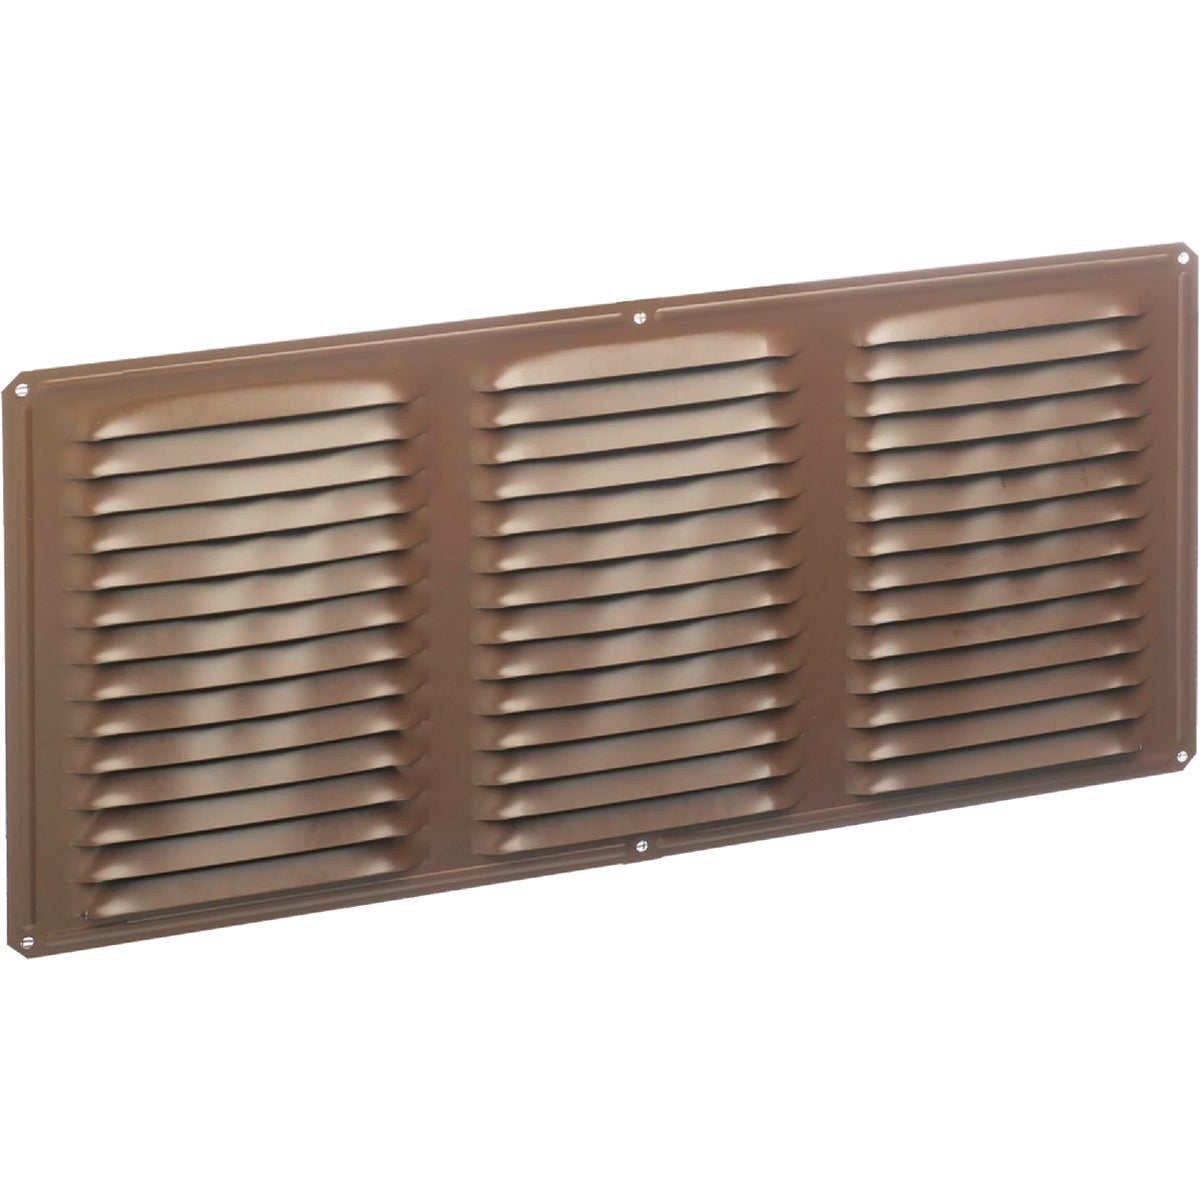 16X6 BR UNDEREAVE VENT - 84217 by Air Vent Inc